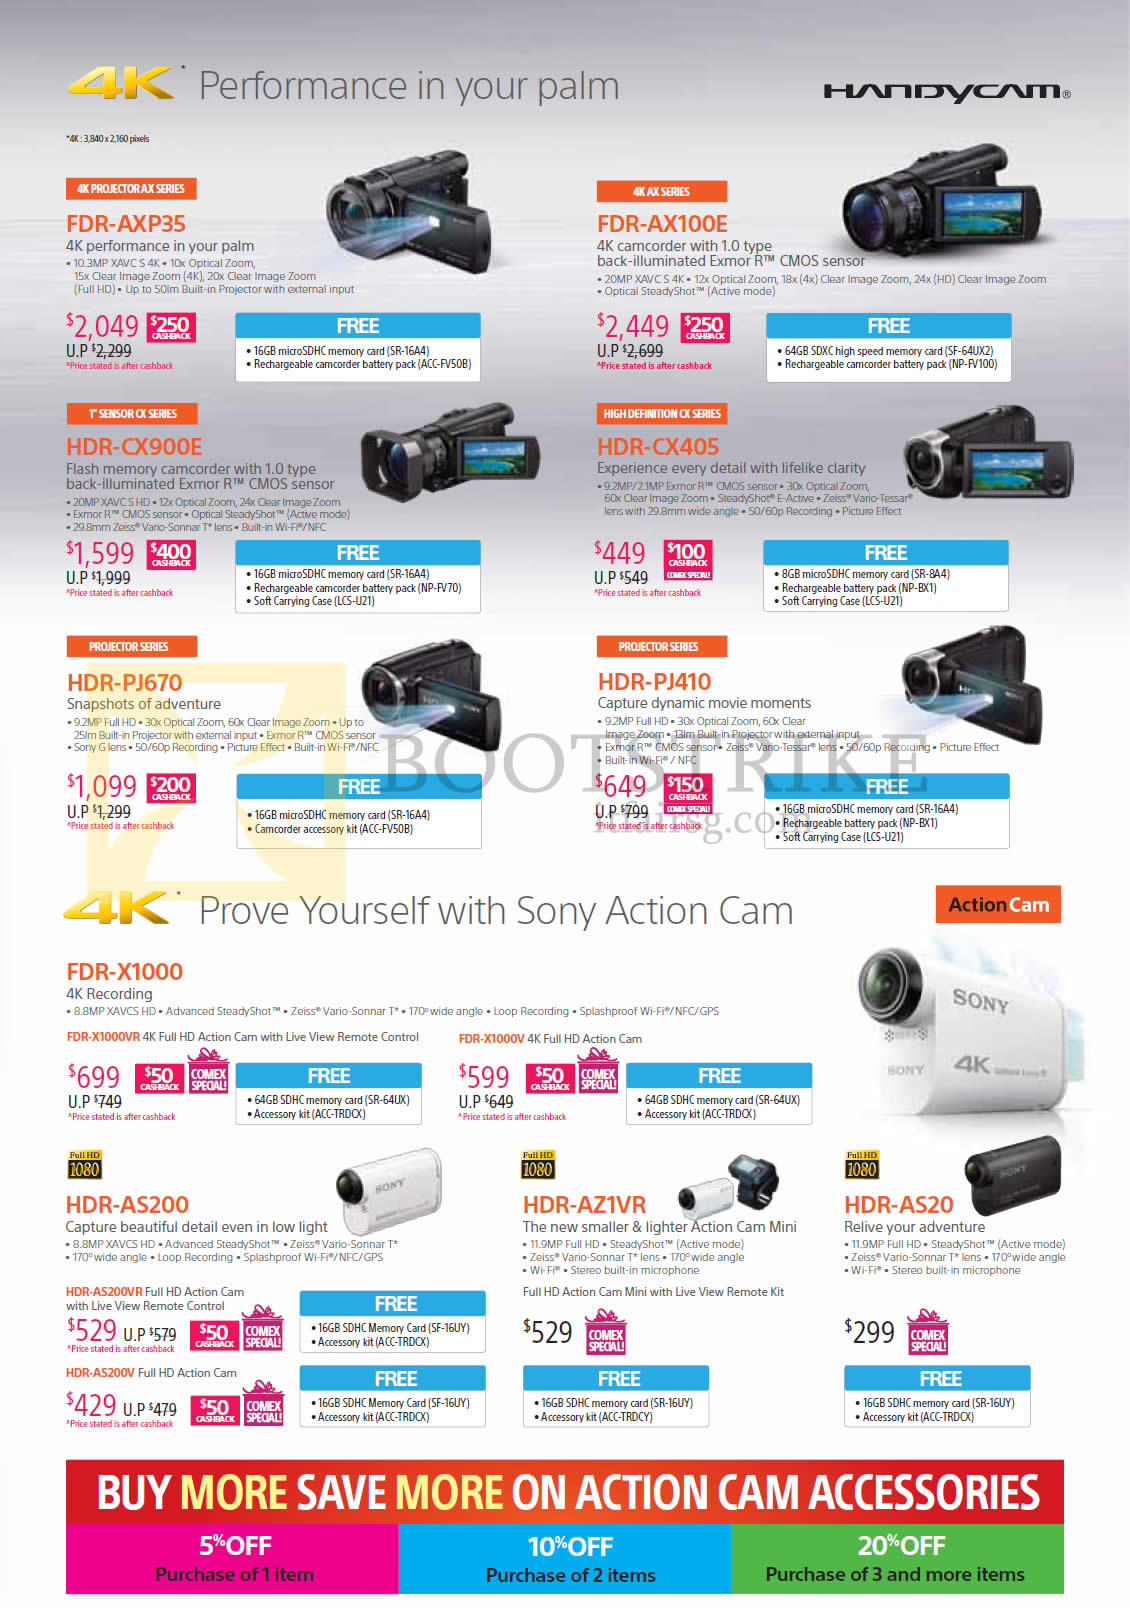 Camera List Of Sony Dslr Camera With Price comex show 2015 price list flyer camera prices in singapore sony camcorders handycam video fdr axp35 ax100e cx 900e cx405 pj670 pj410 x1000 as200 az1vr as20